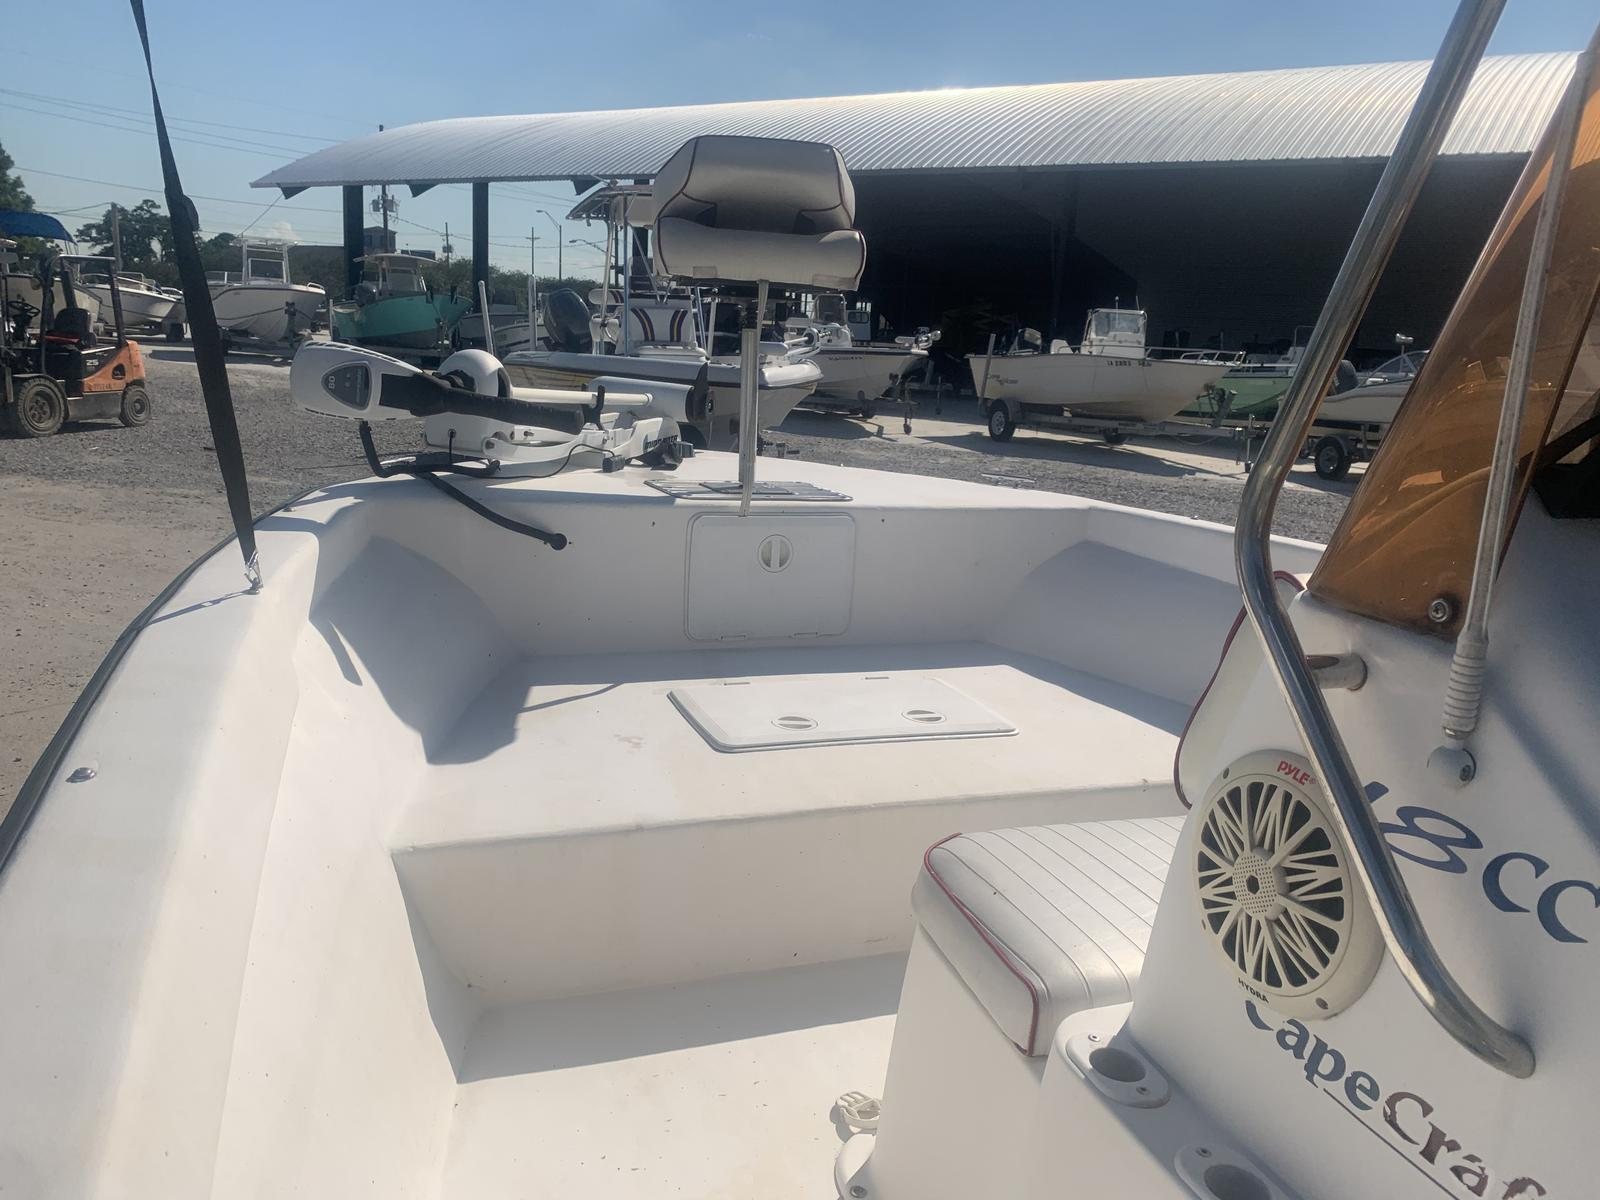 2007 Cape Craft boat for sale, model of the boat is 18 CC & Image # 5 of 8